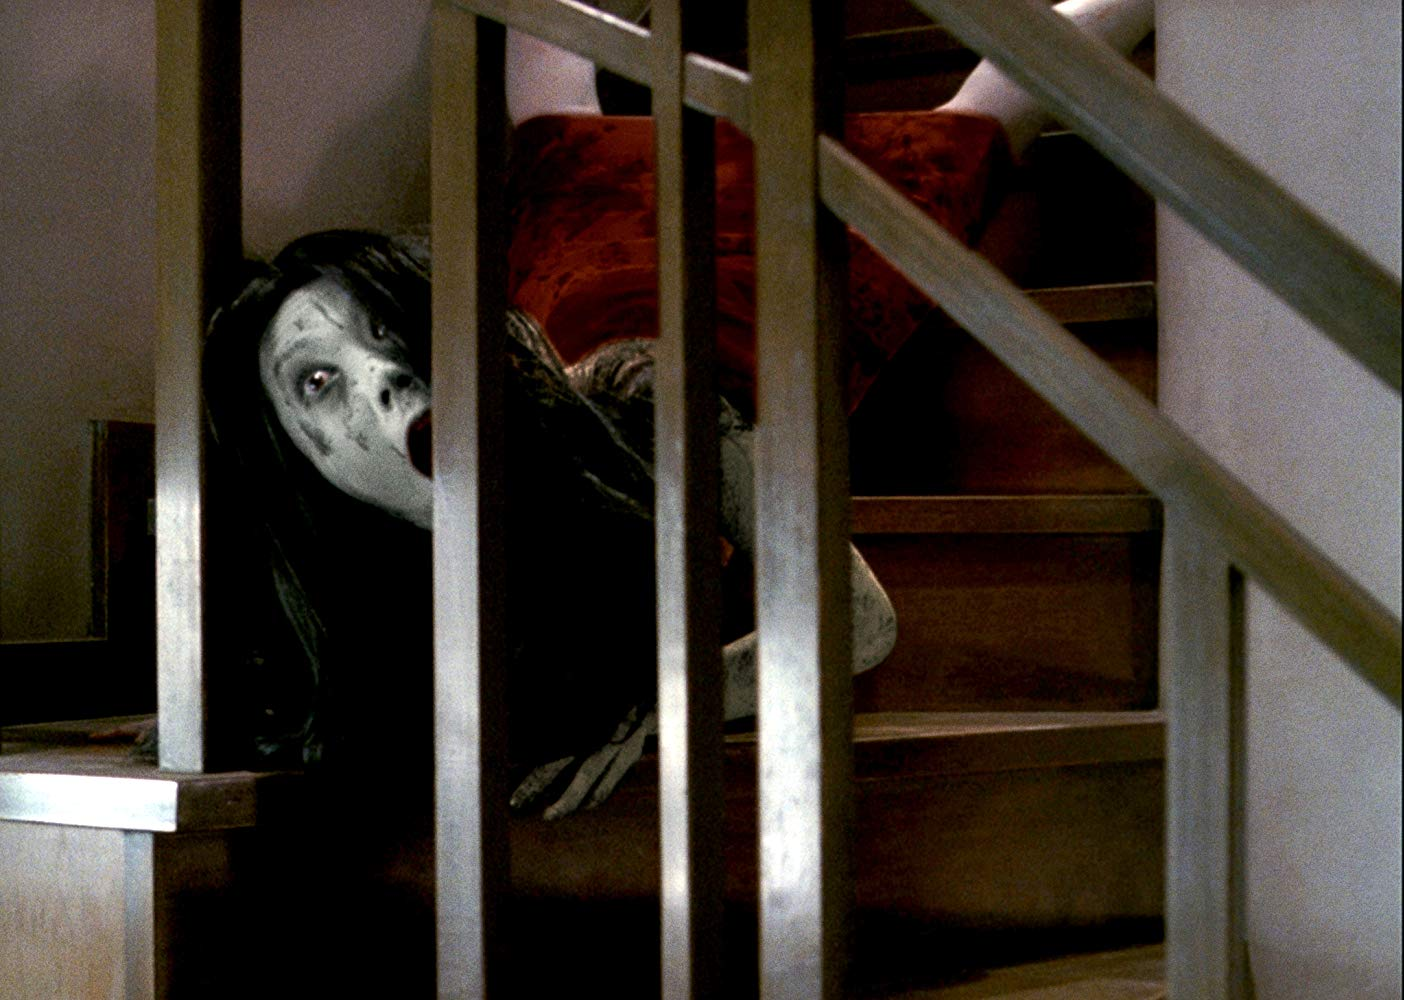 The ghost woman Kayako (Takako Fuji) in The Grudge (2004)